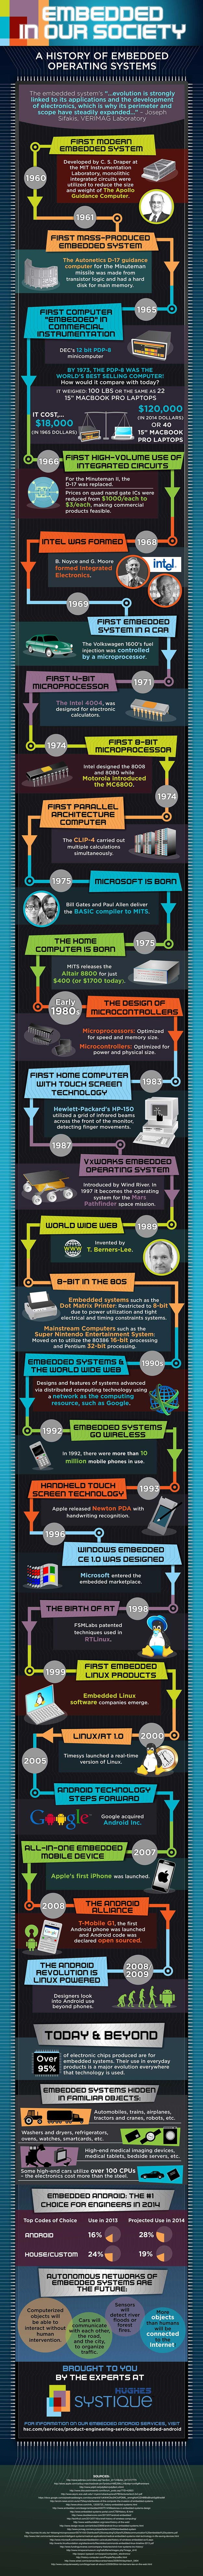 History Of Embedded Systems